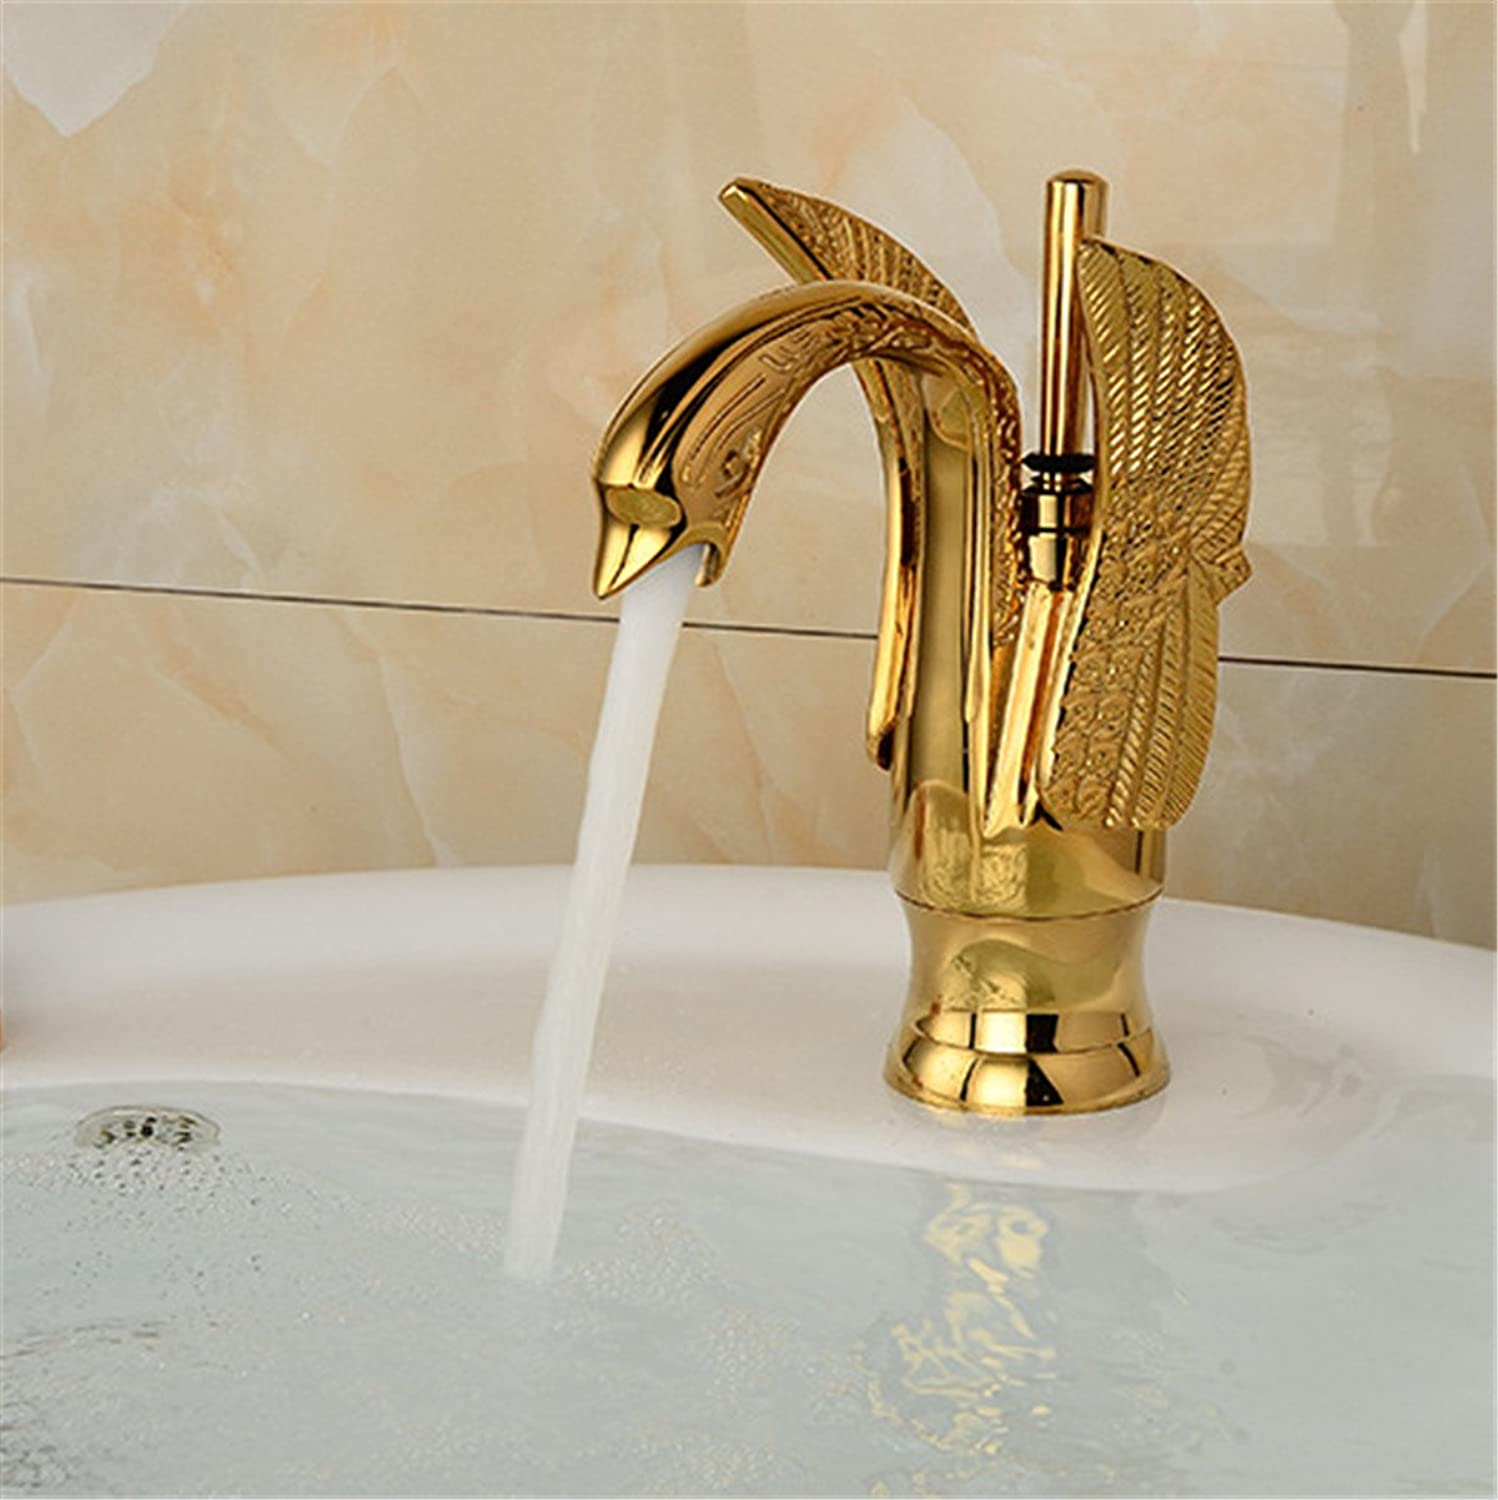 Bijjaladeva Antique Bathroom Sink Vessel Faucet Basin Mixer Tap The swan bathroom basin bathroom sink basin-wide antique copper single basin faucet below the golden basin cold wate